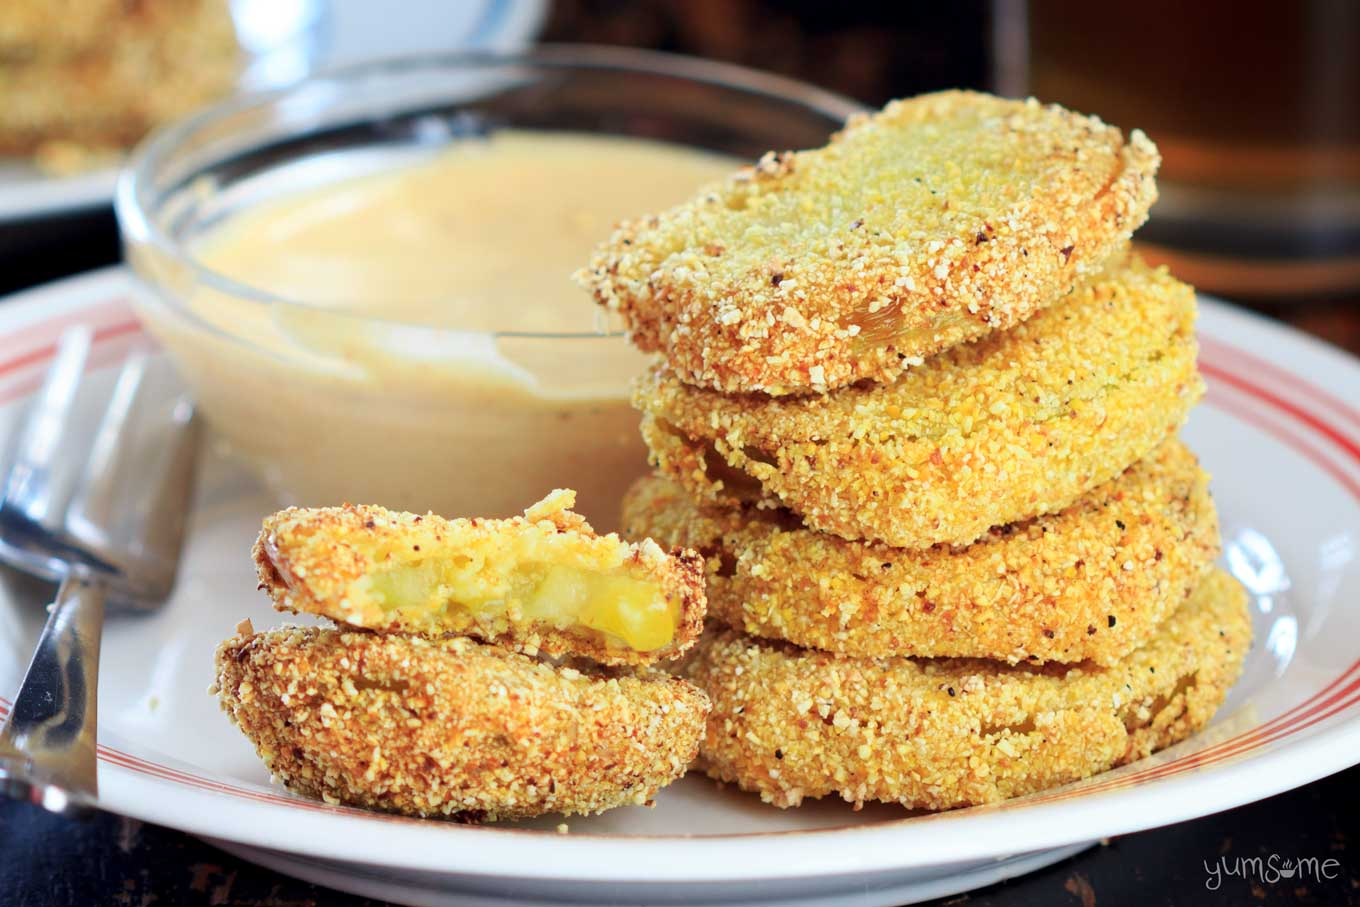 Fried green tomatoes and remoulade sauce.